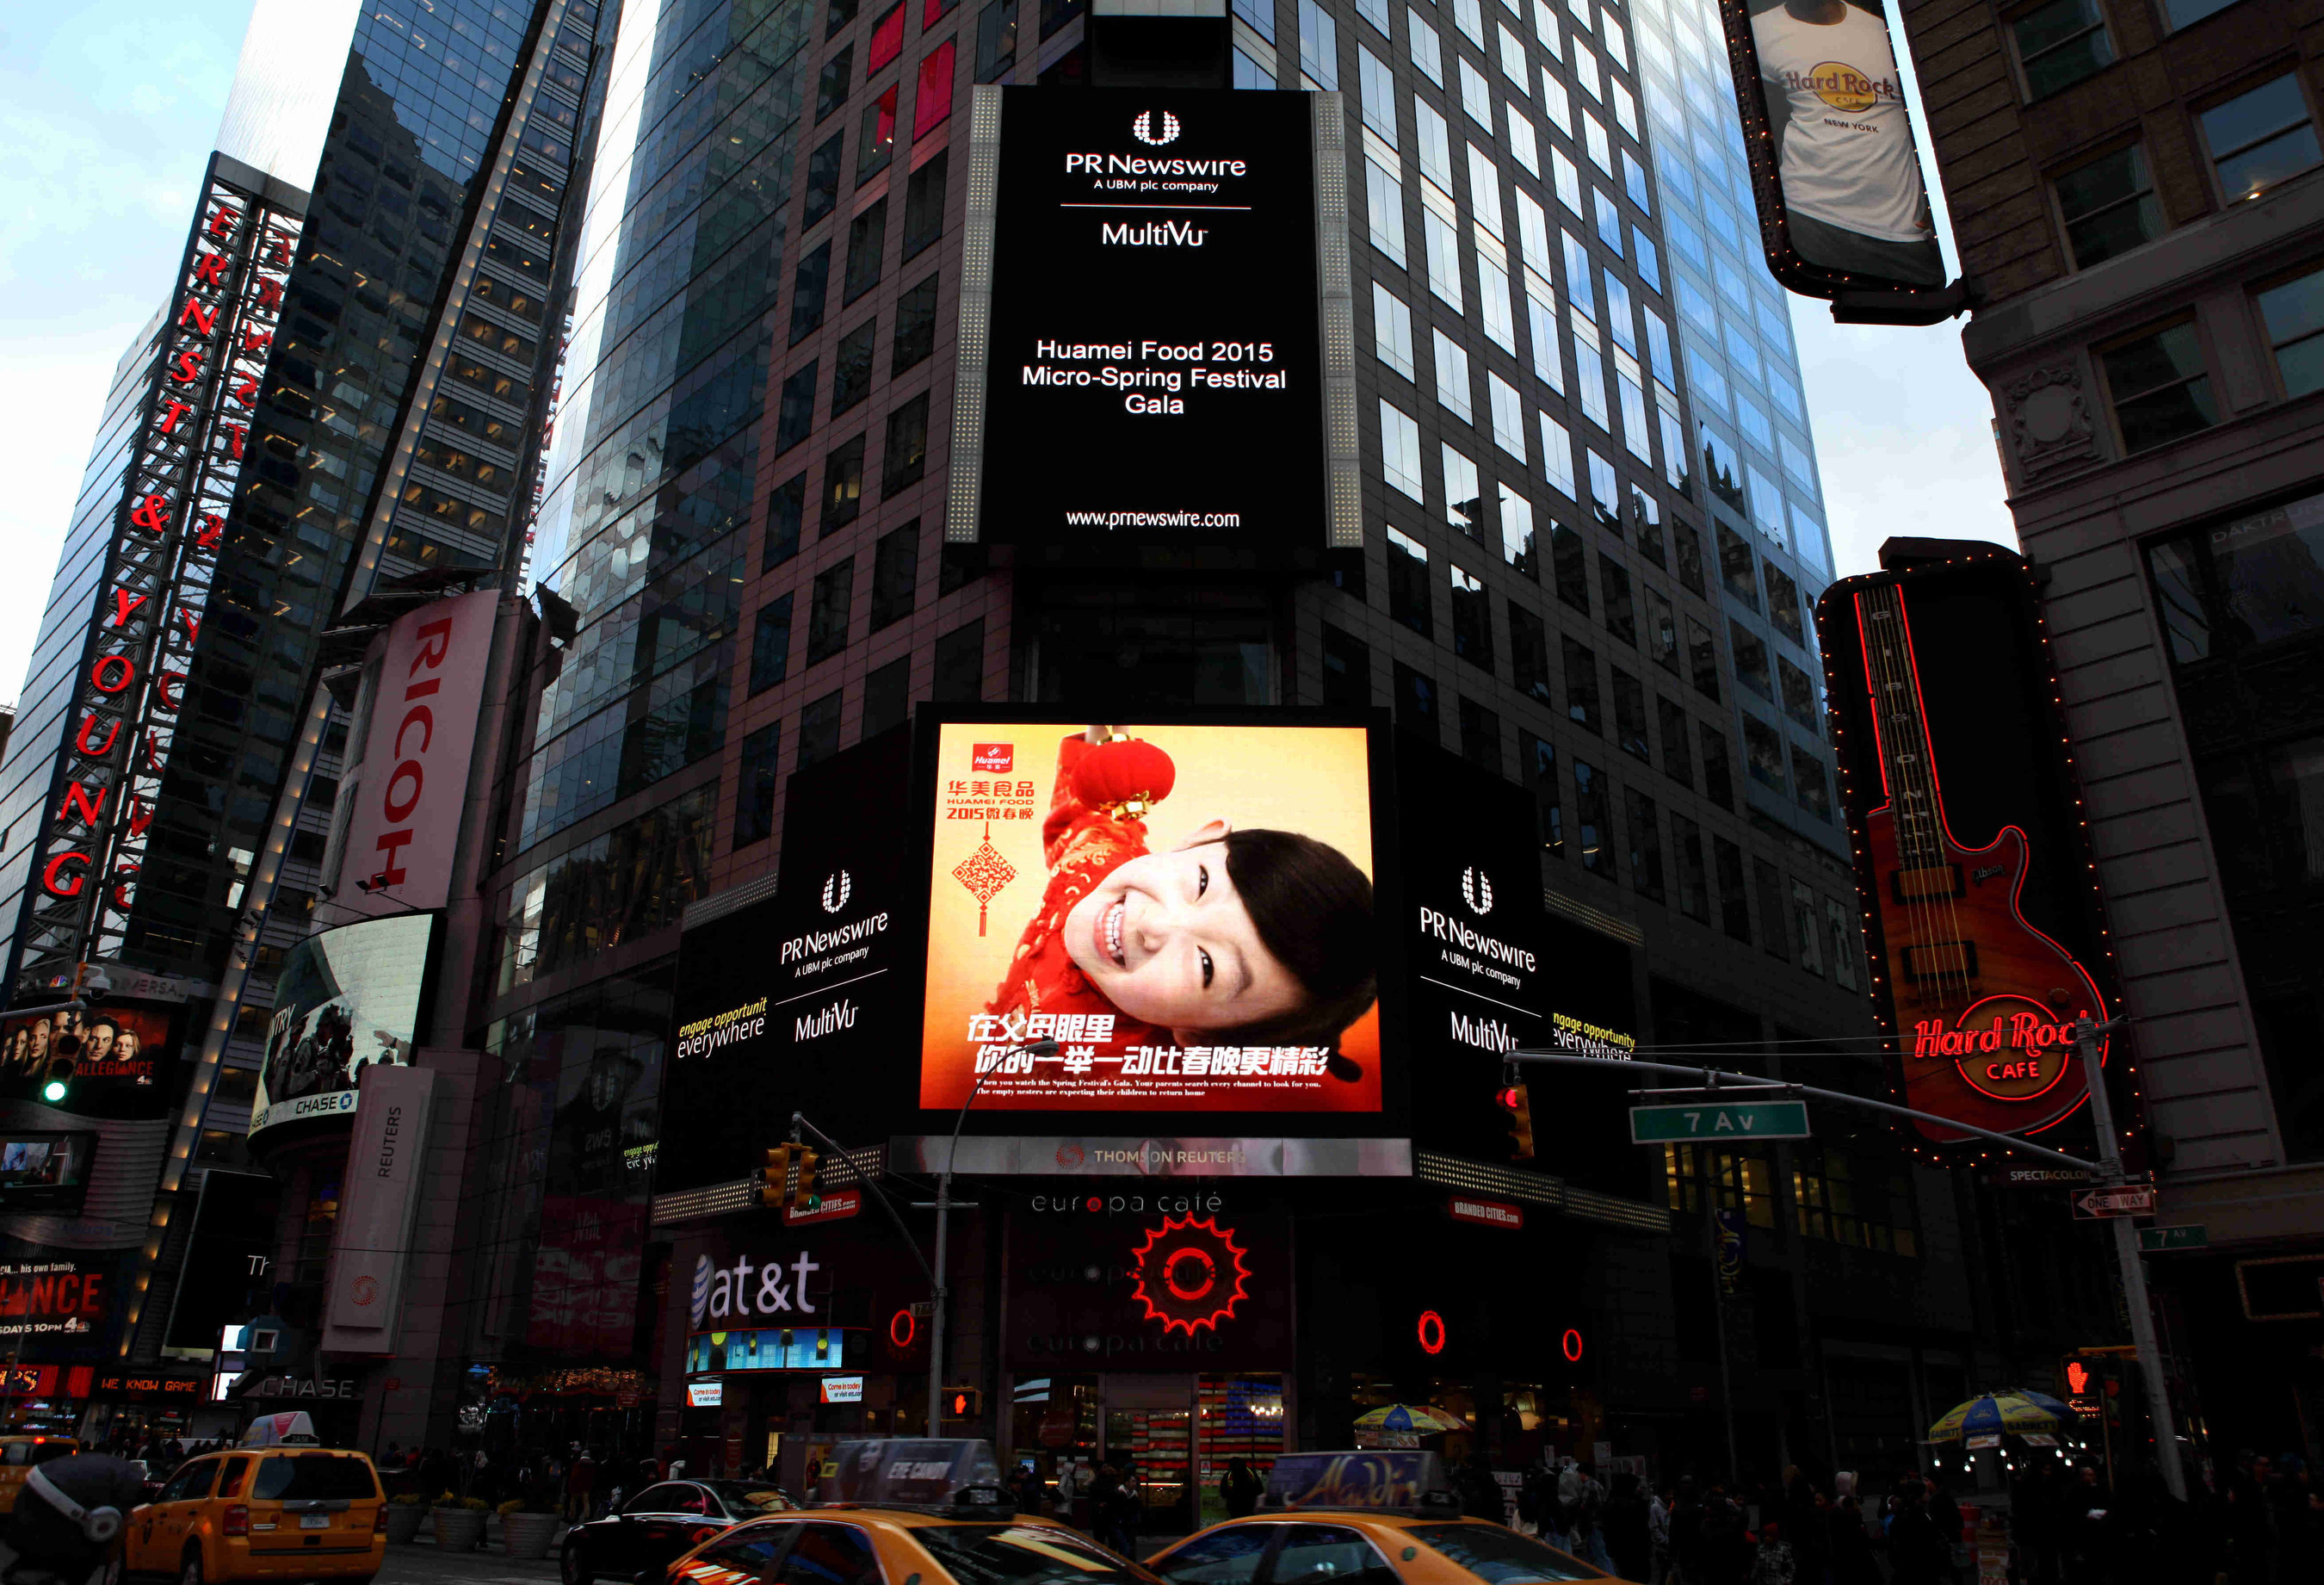 The poster of Huamei 2015 spring festivel gala launch times square